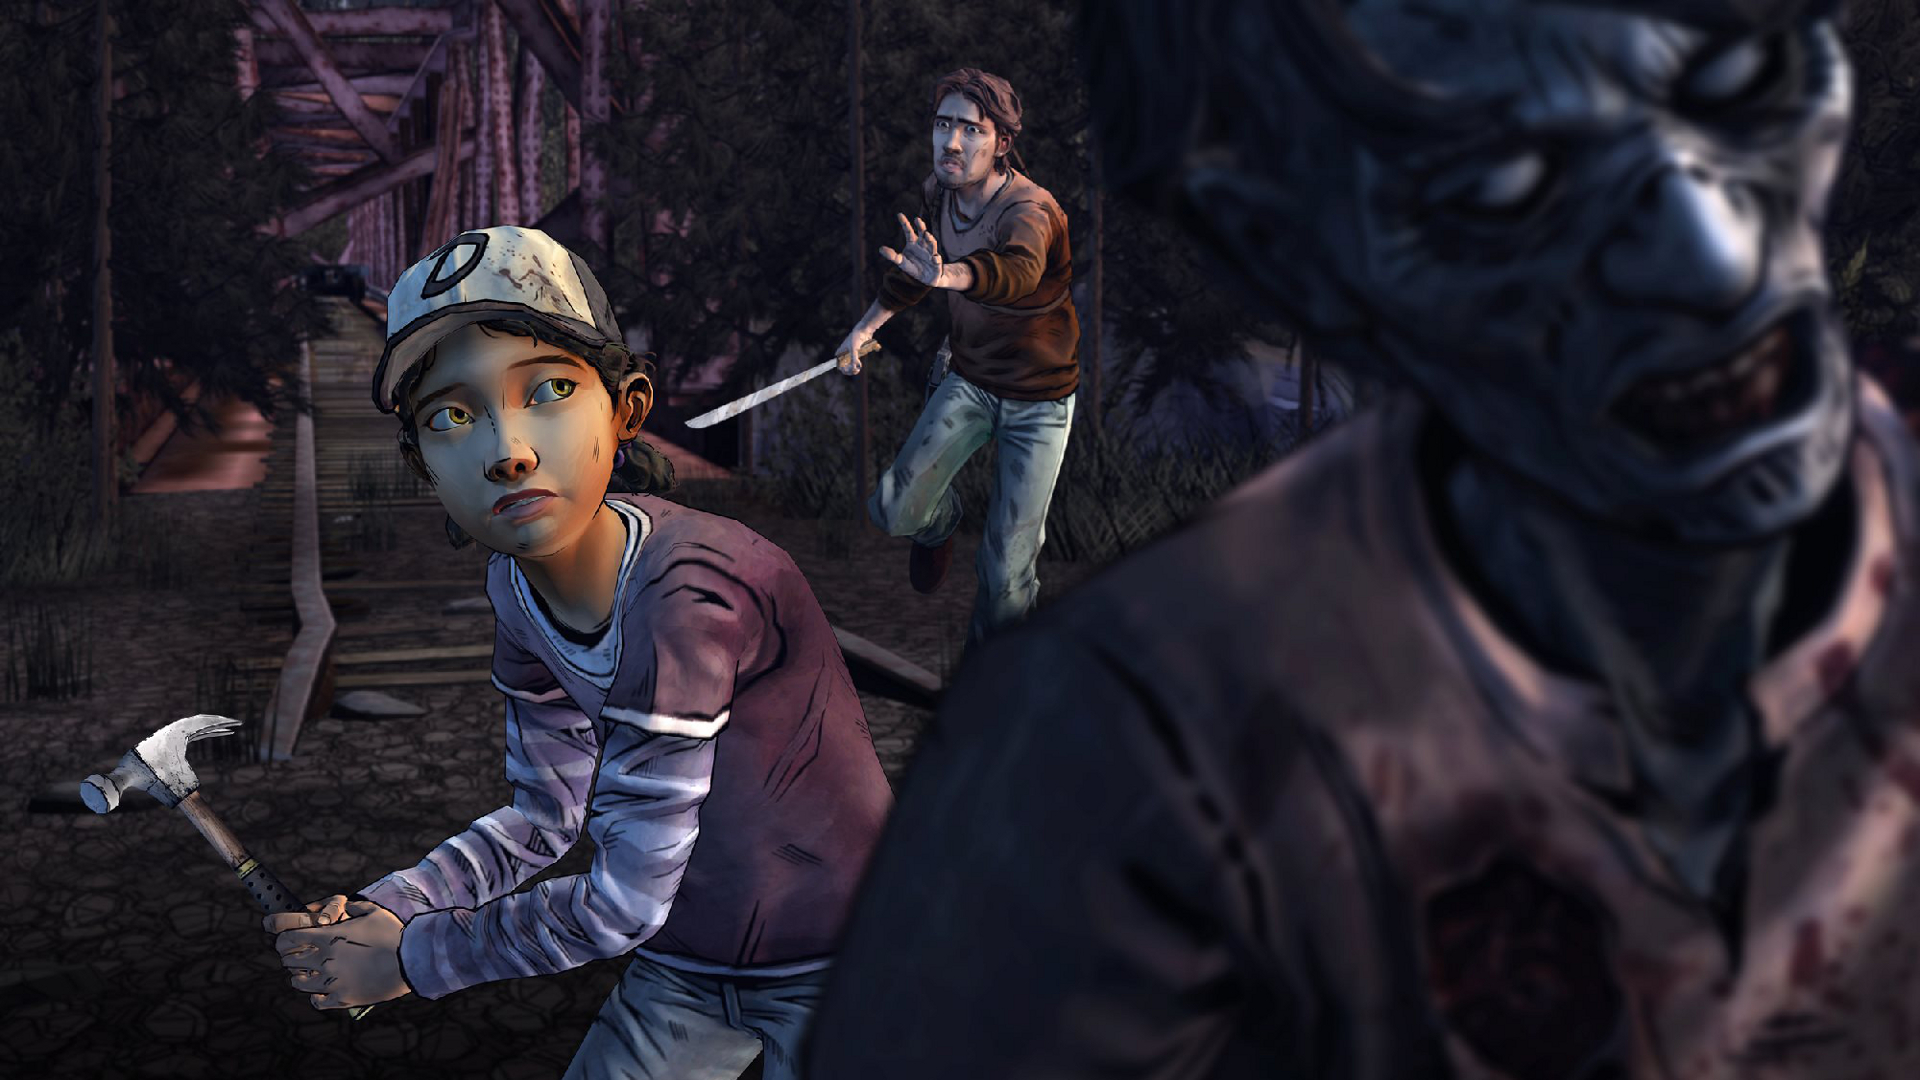 Striking out on her own in the game's second season, Clementine is an extremely resilient and pragmatic survivor. Be sure to try and pass on some good instincts when you play!